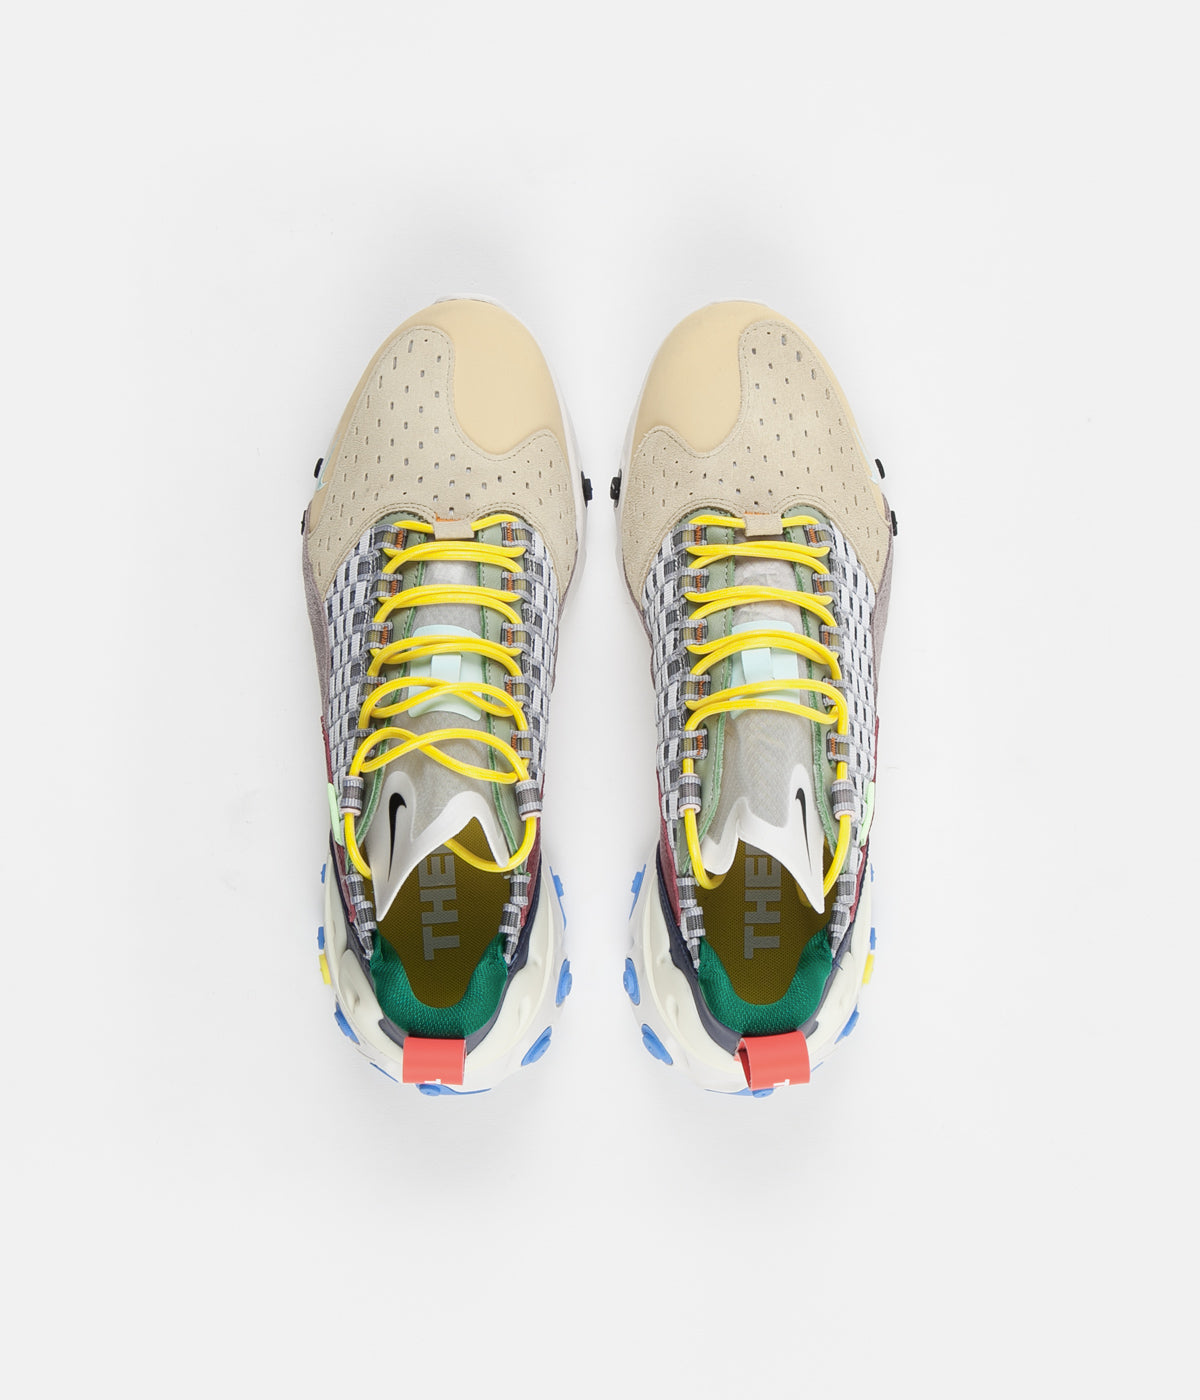 preocuparse Gimnasta Conversacional  Nike React Sertu Shoes - Wolf Grey / Teal Tint - Pumice | Always in Colour